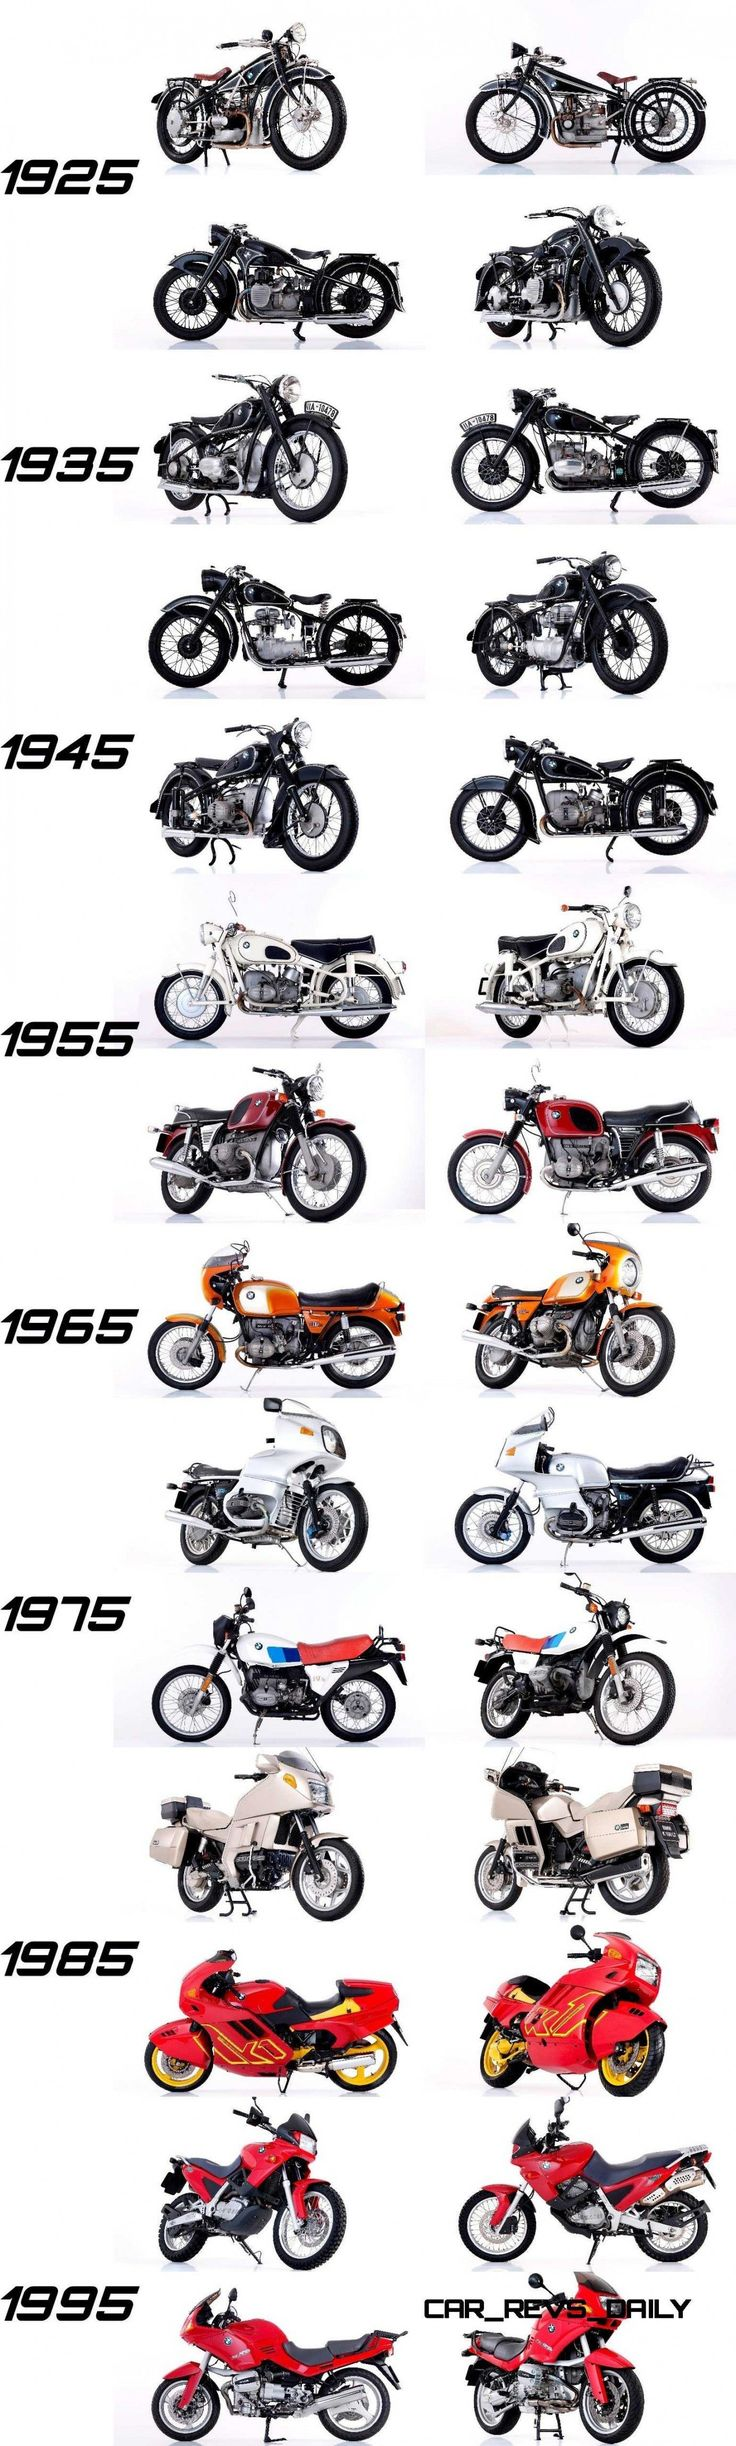 BMW Motorcycles Revolución Since 1923 – Animated Timeline Via 20 Iconic Bikes